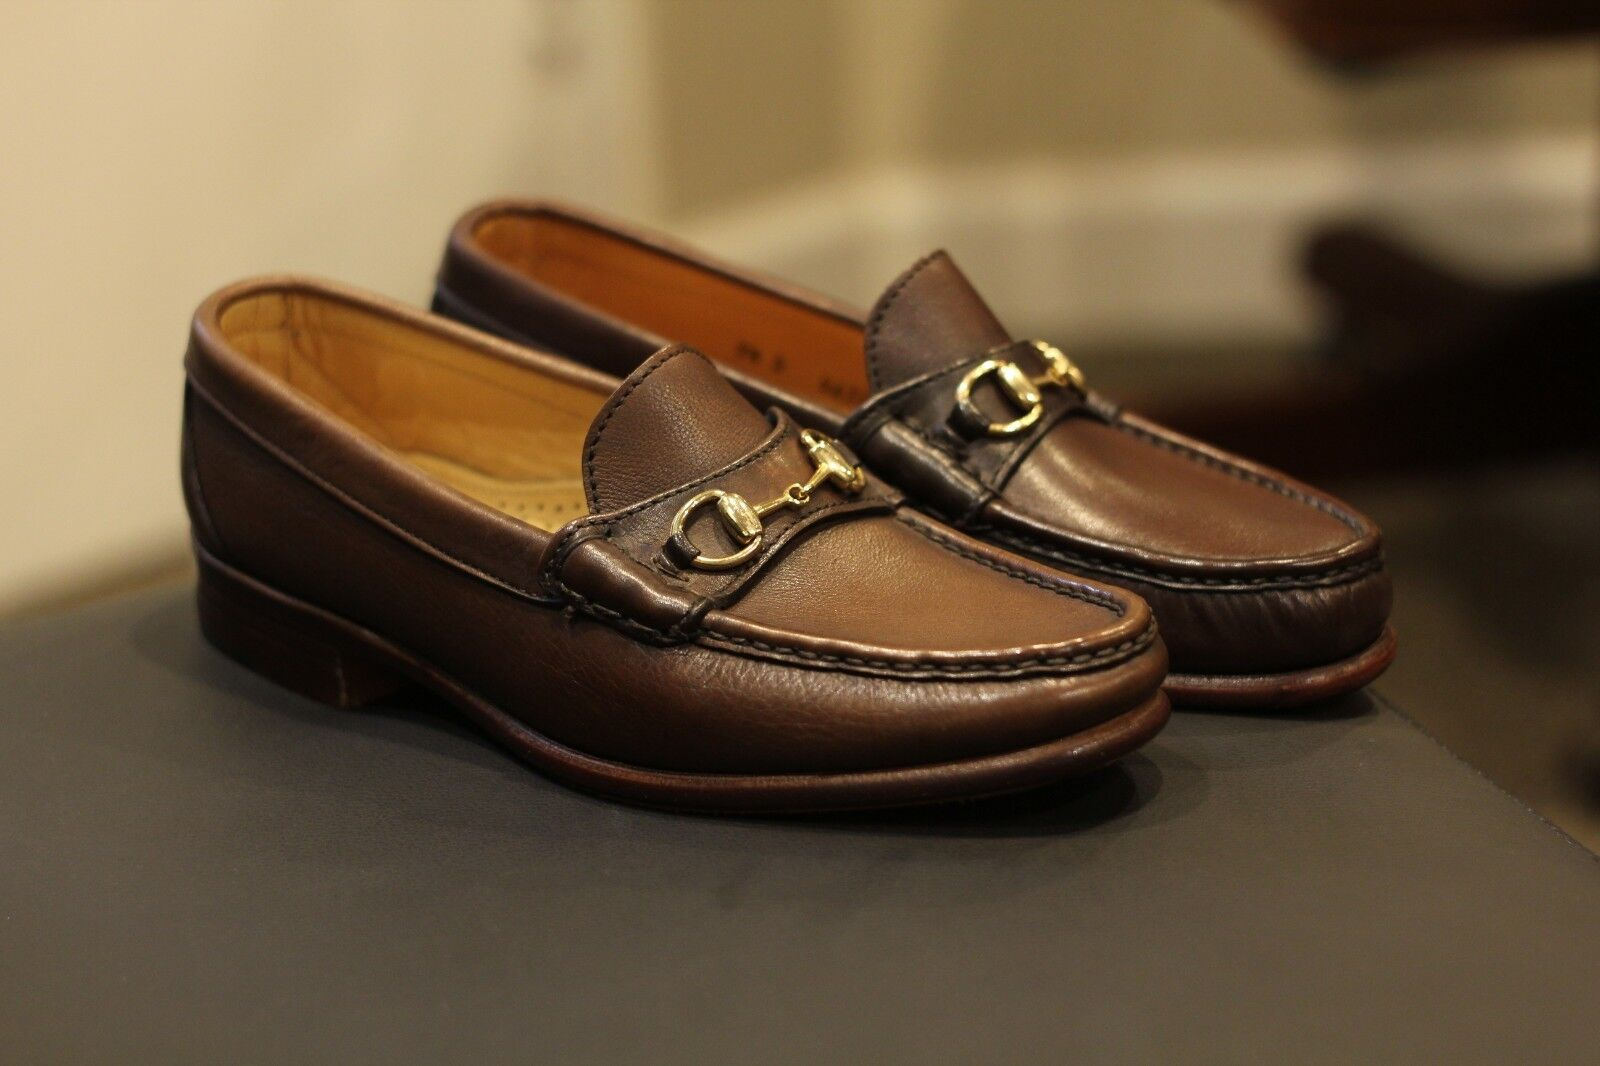 b7a685c1fba Alden H466 Cape Cod Brown Leather Horse Bit Loafers Shoes Made in ...